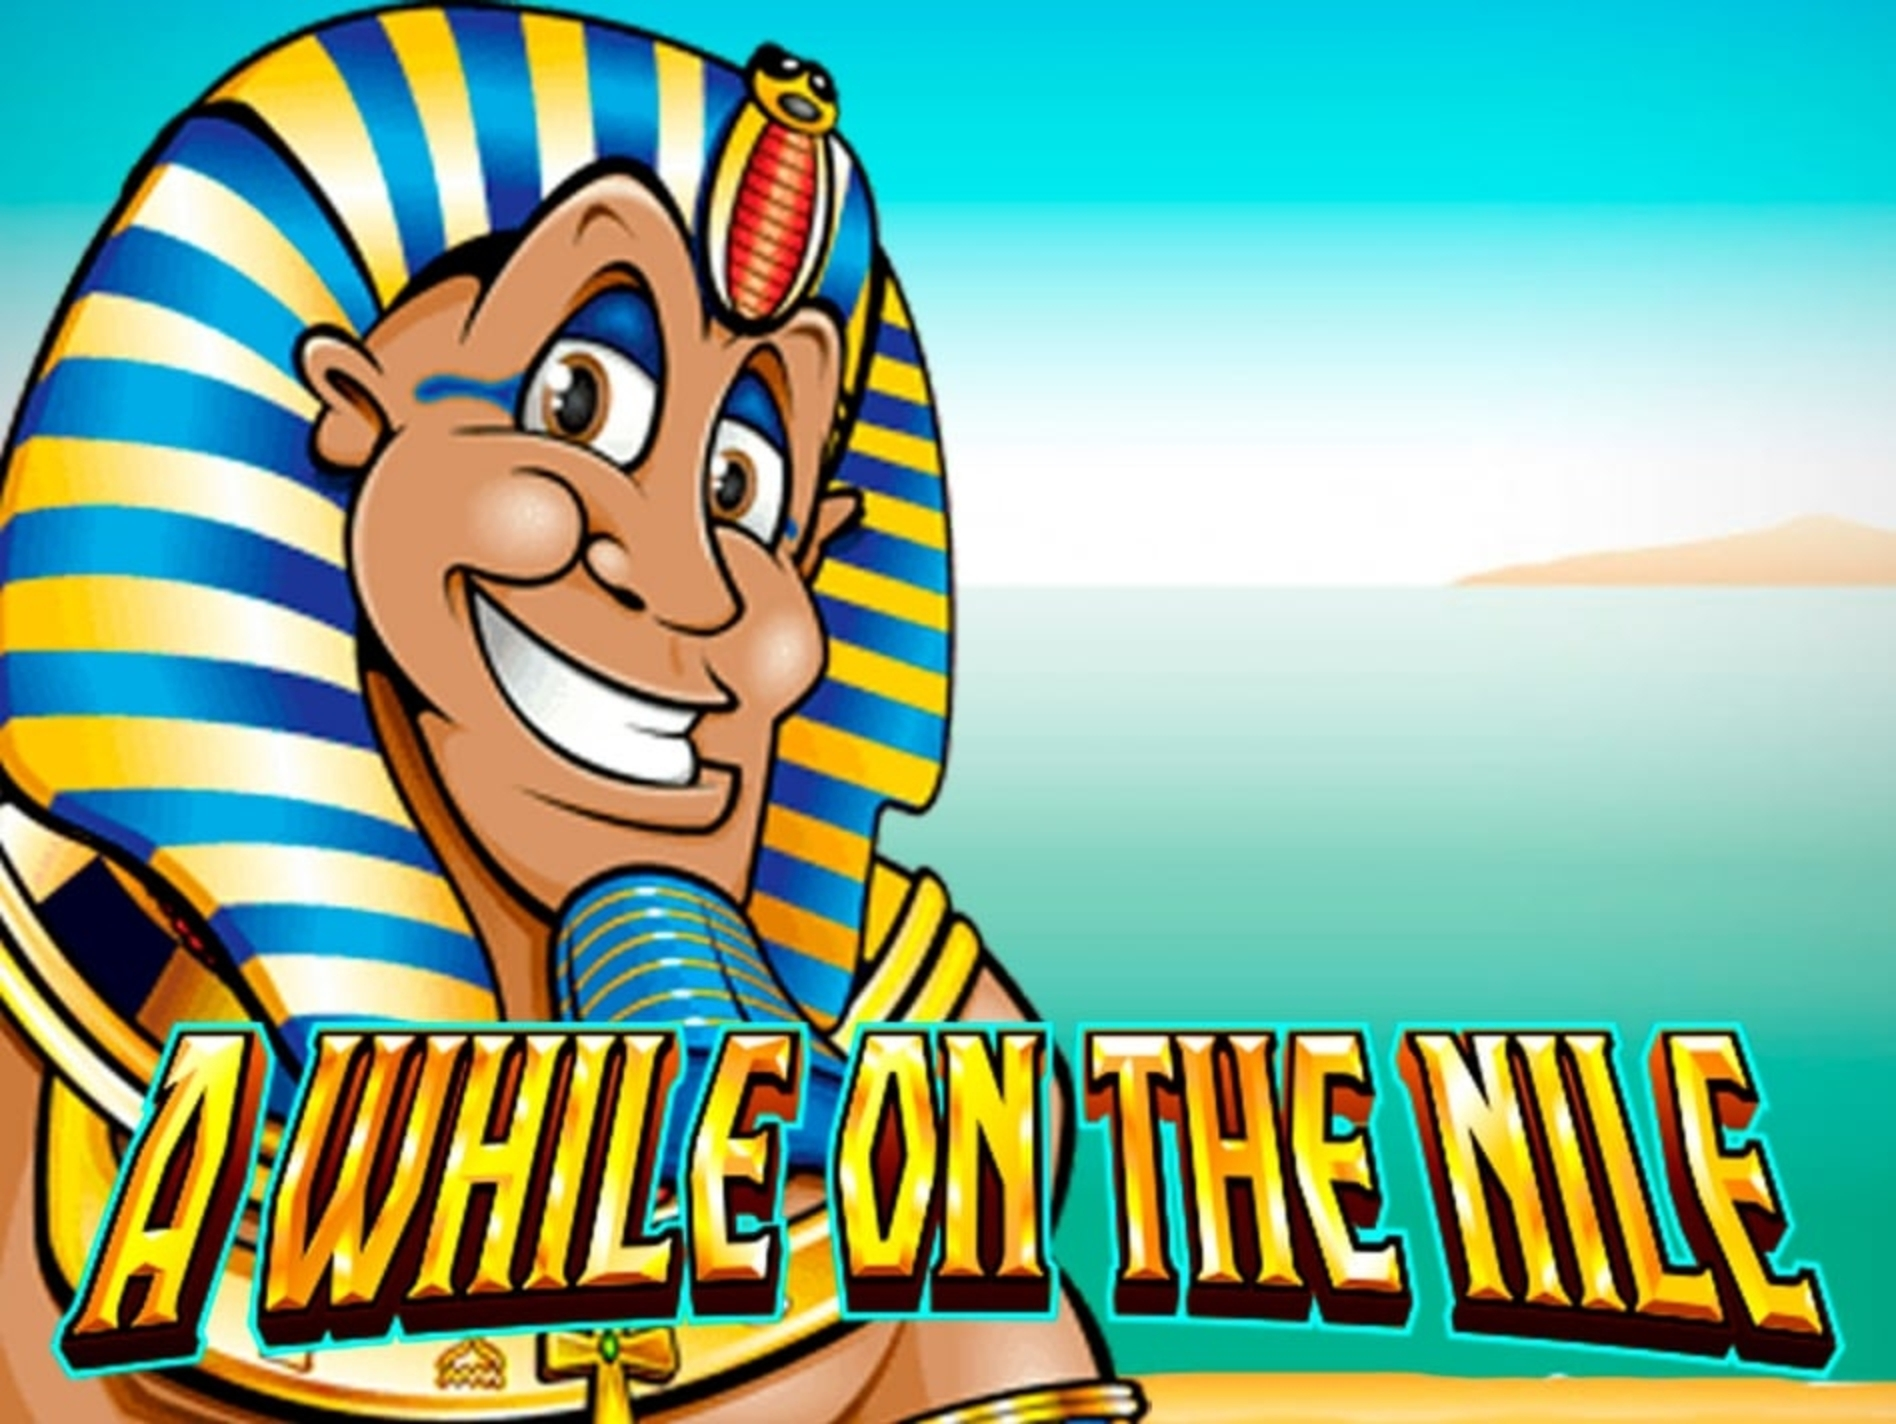 A While On The Nile Online Slot Demo Game by NextGen Gaming